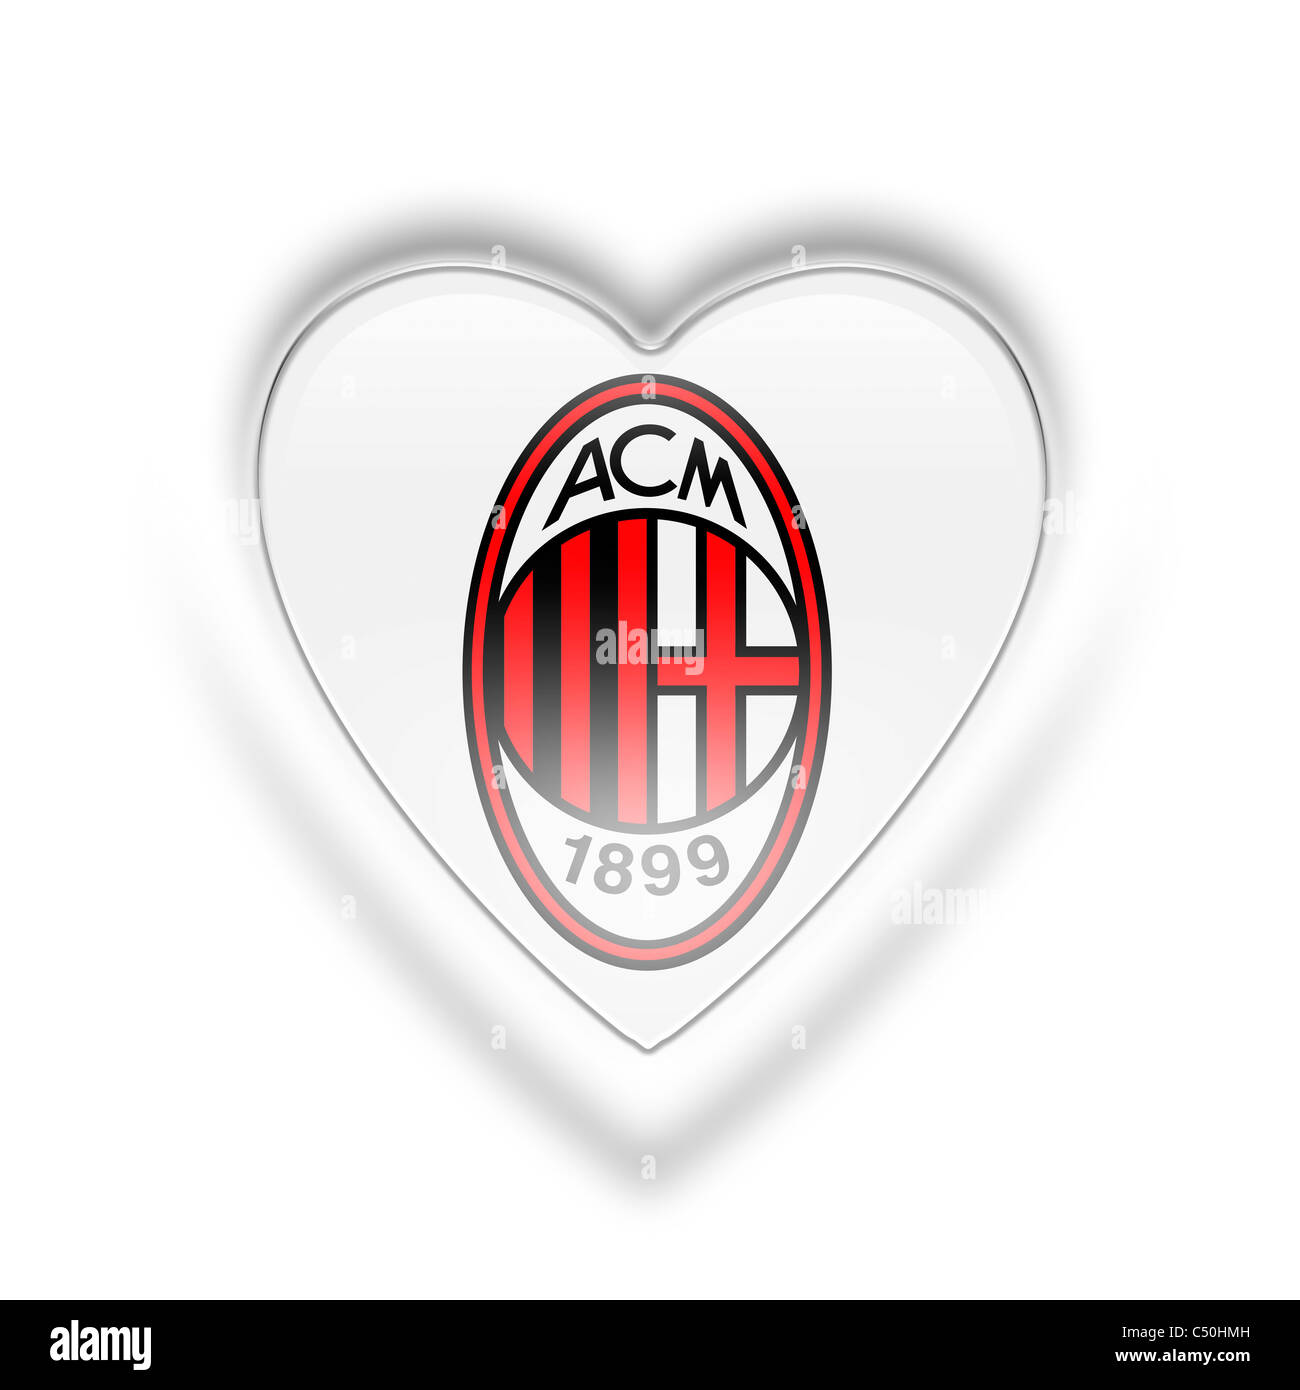 AC A.C. Milan logo flag symbol icon Stock Photo: 37507921 - Alamy